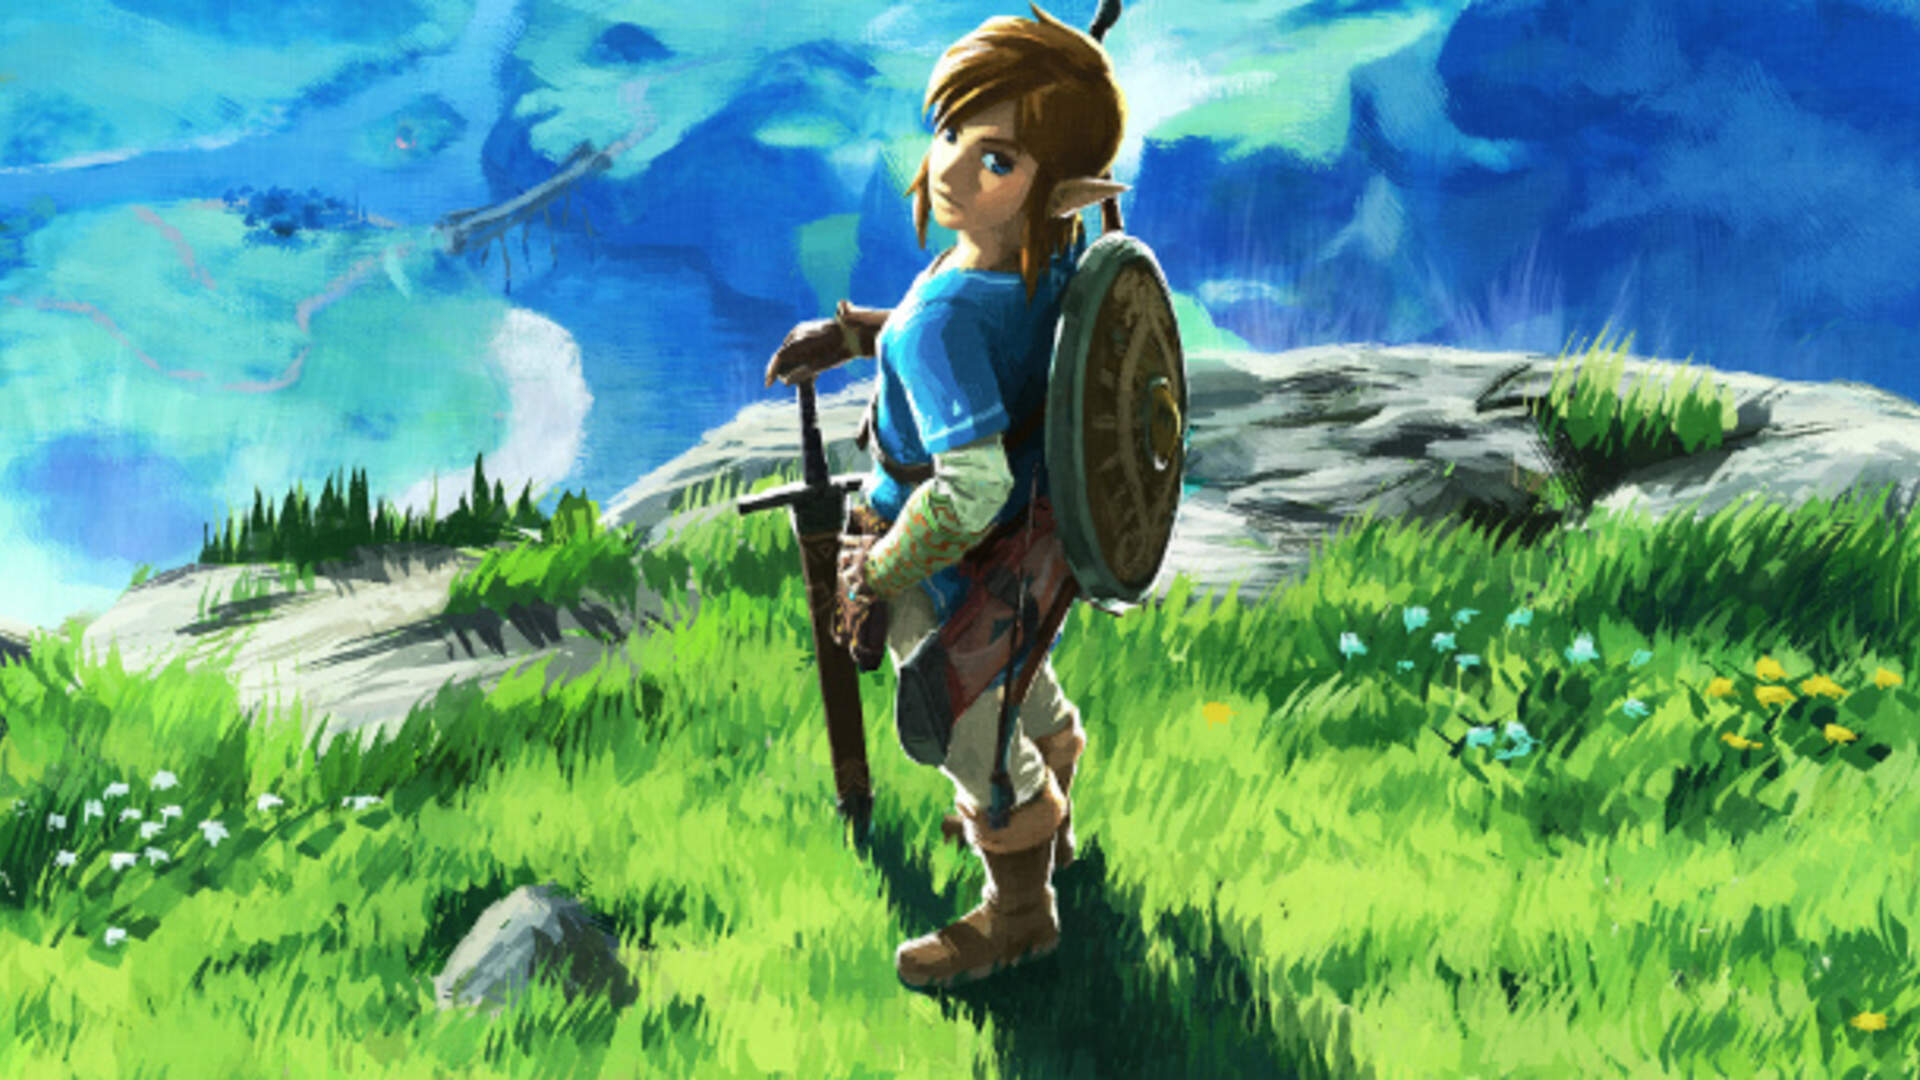 Legend of Zelda: Breath of the Wild Receives The Series' First Season Pass DLC